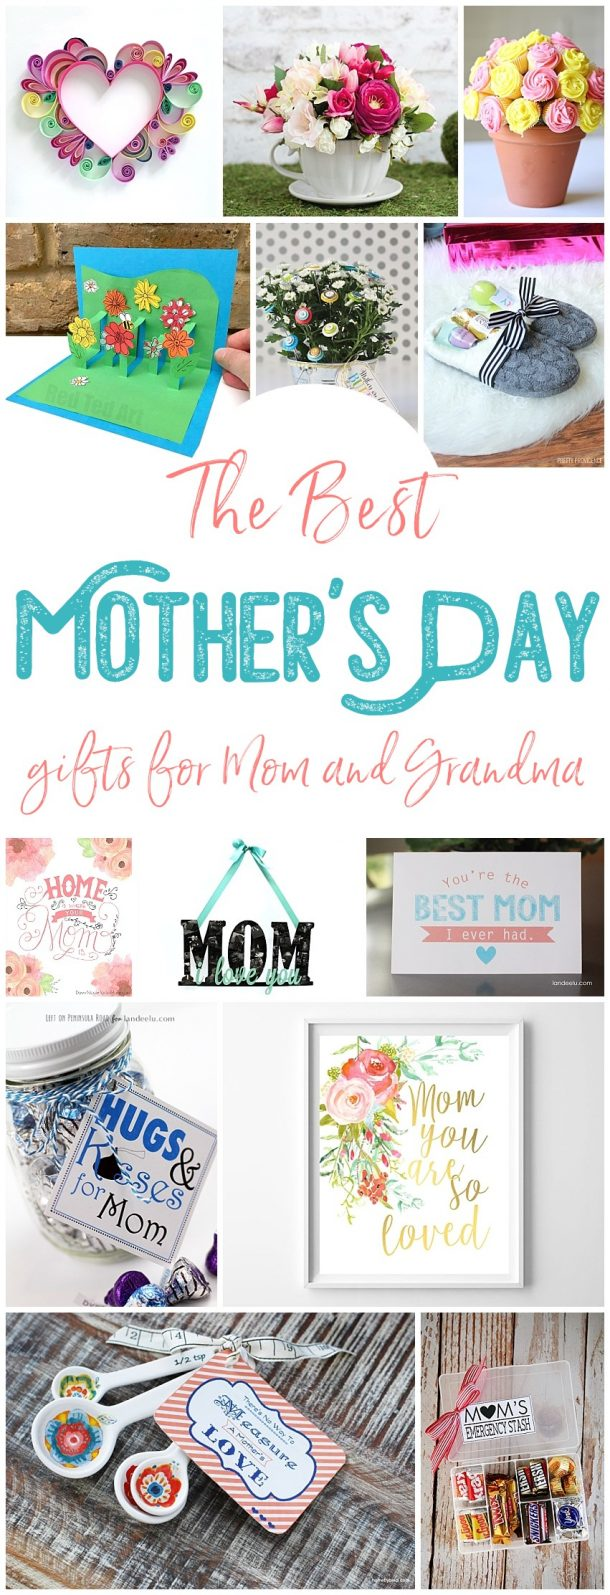 The best easy diy mothers day gifts and treats ideas holiday the best easy diy mothers day gifts and treats ideas holiday craft activity projects solutioingenieria